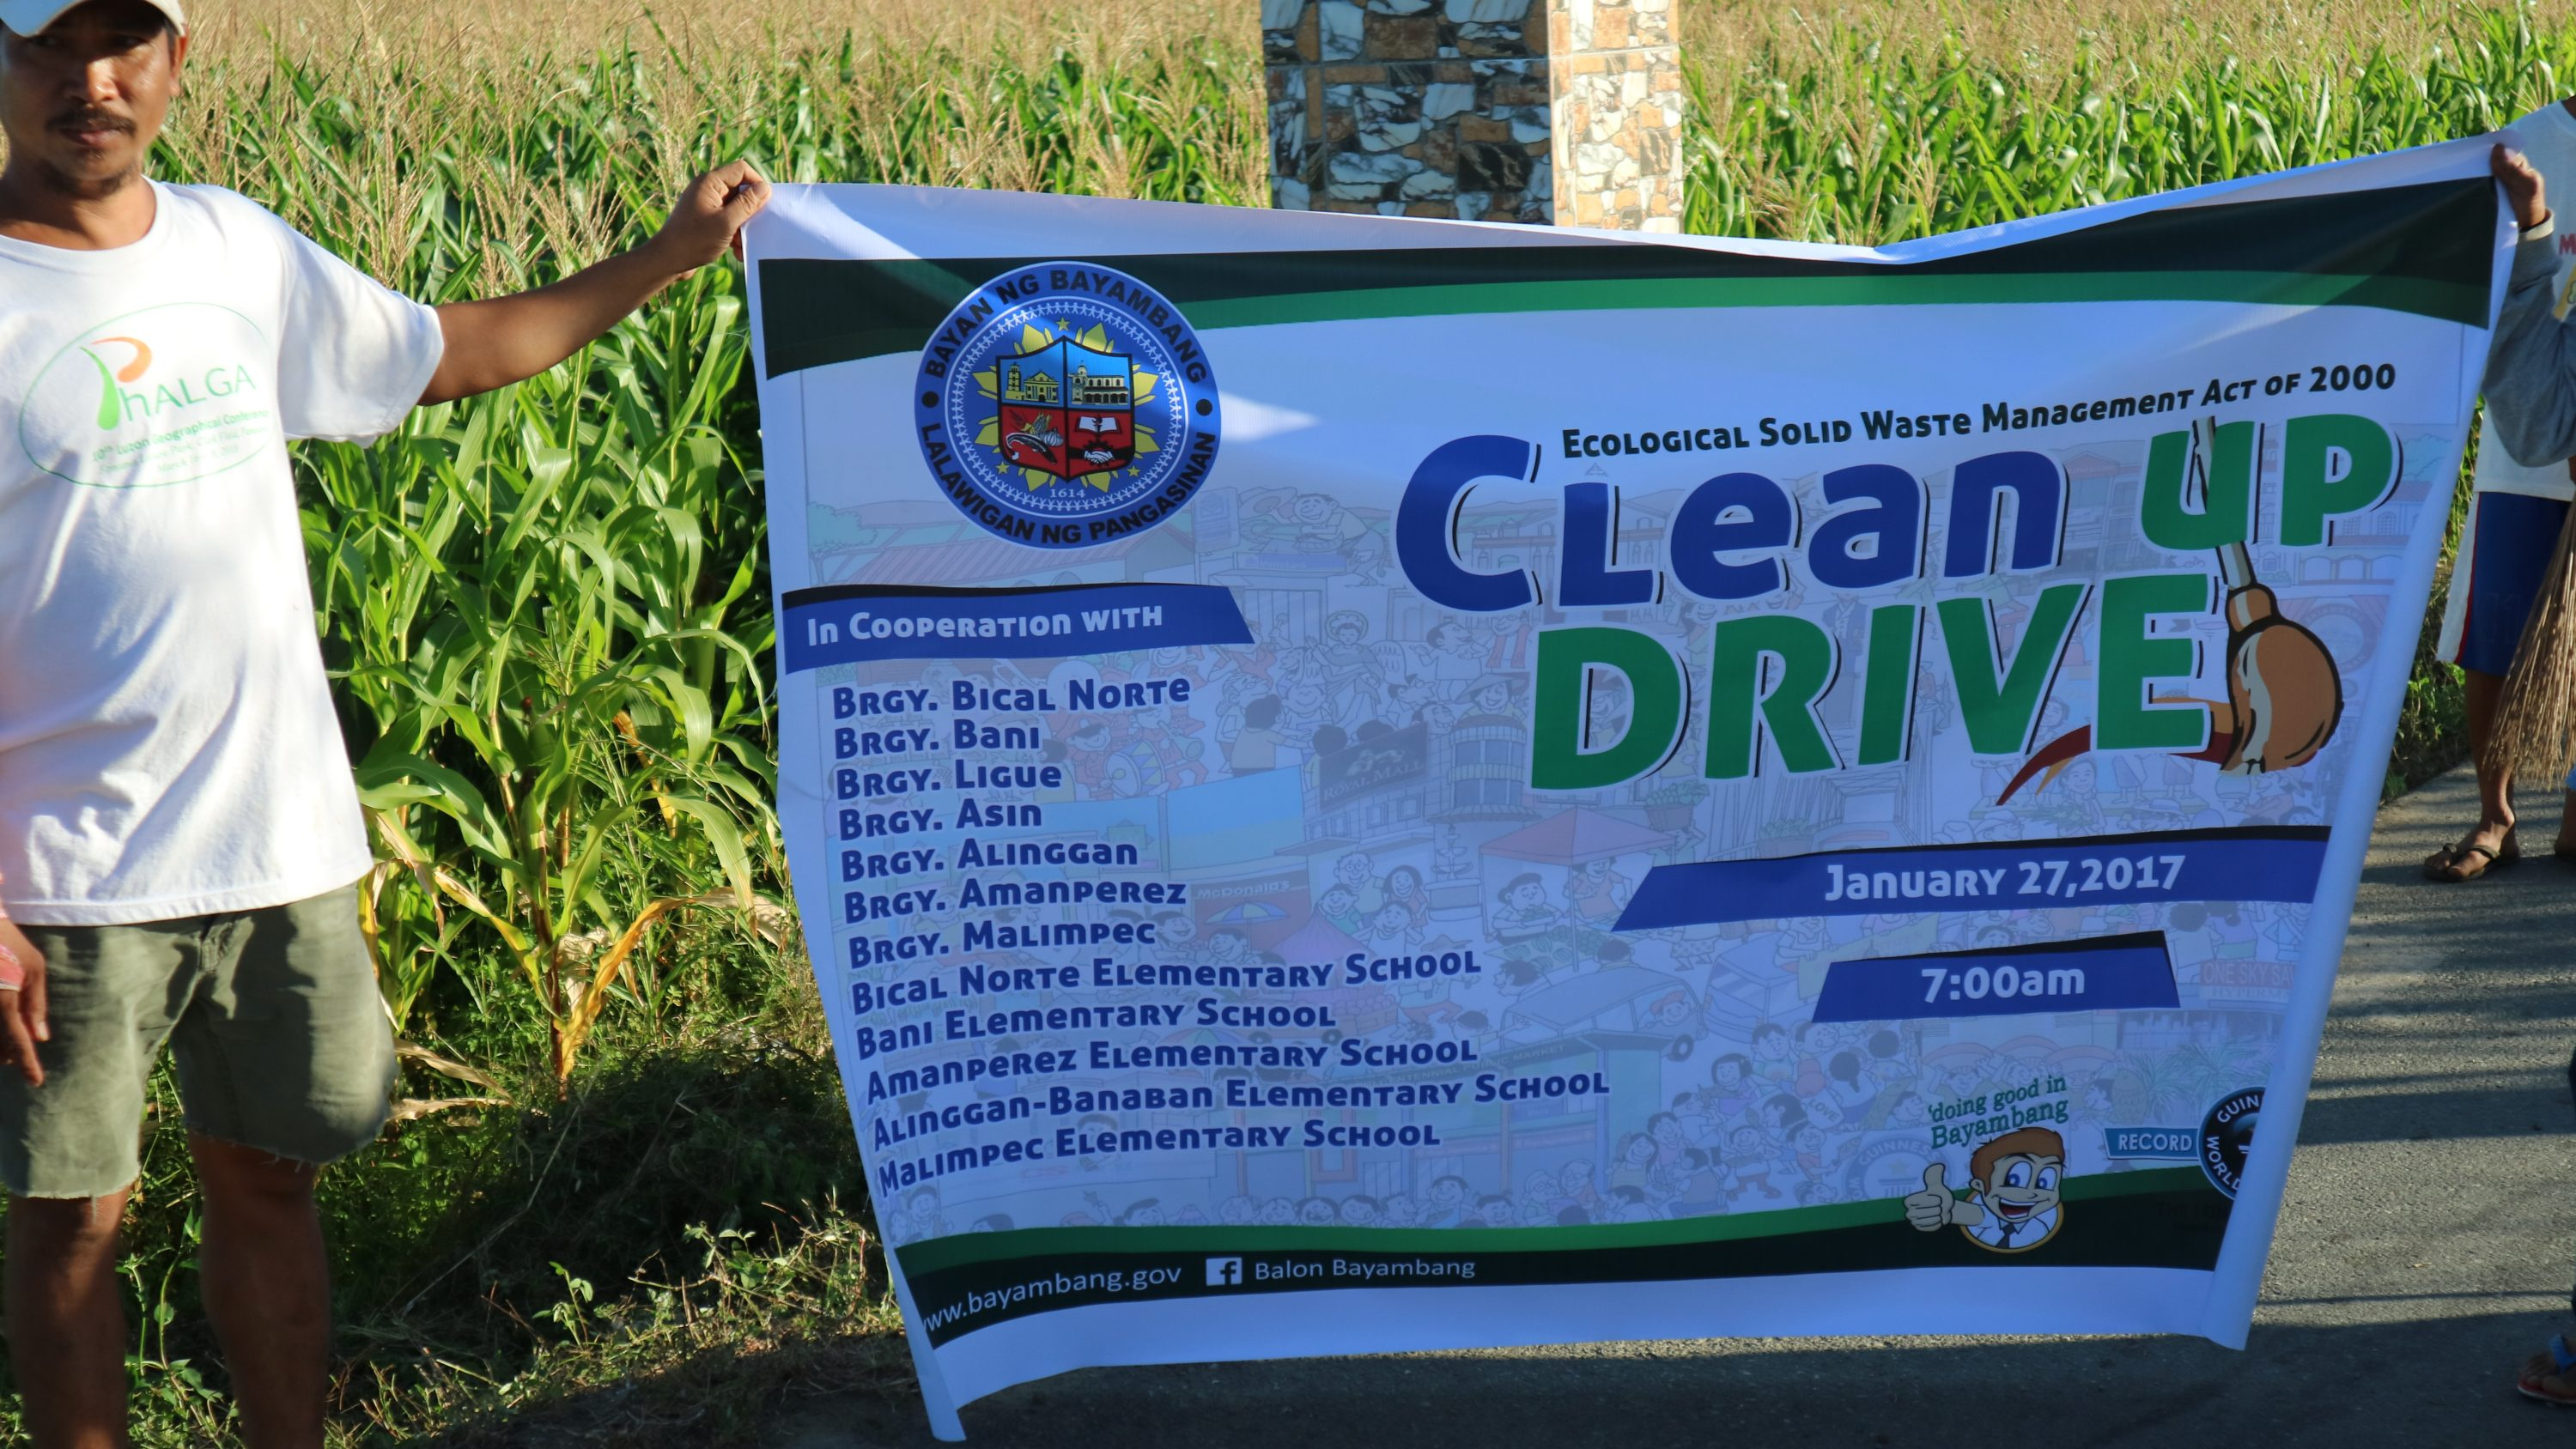 Clean Up Drive 2017